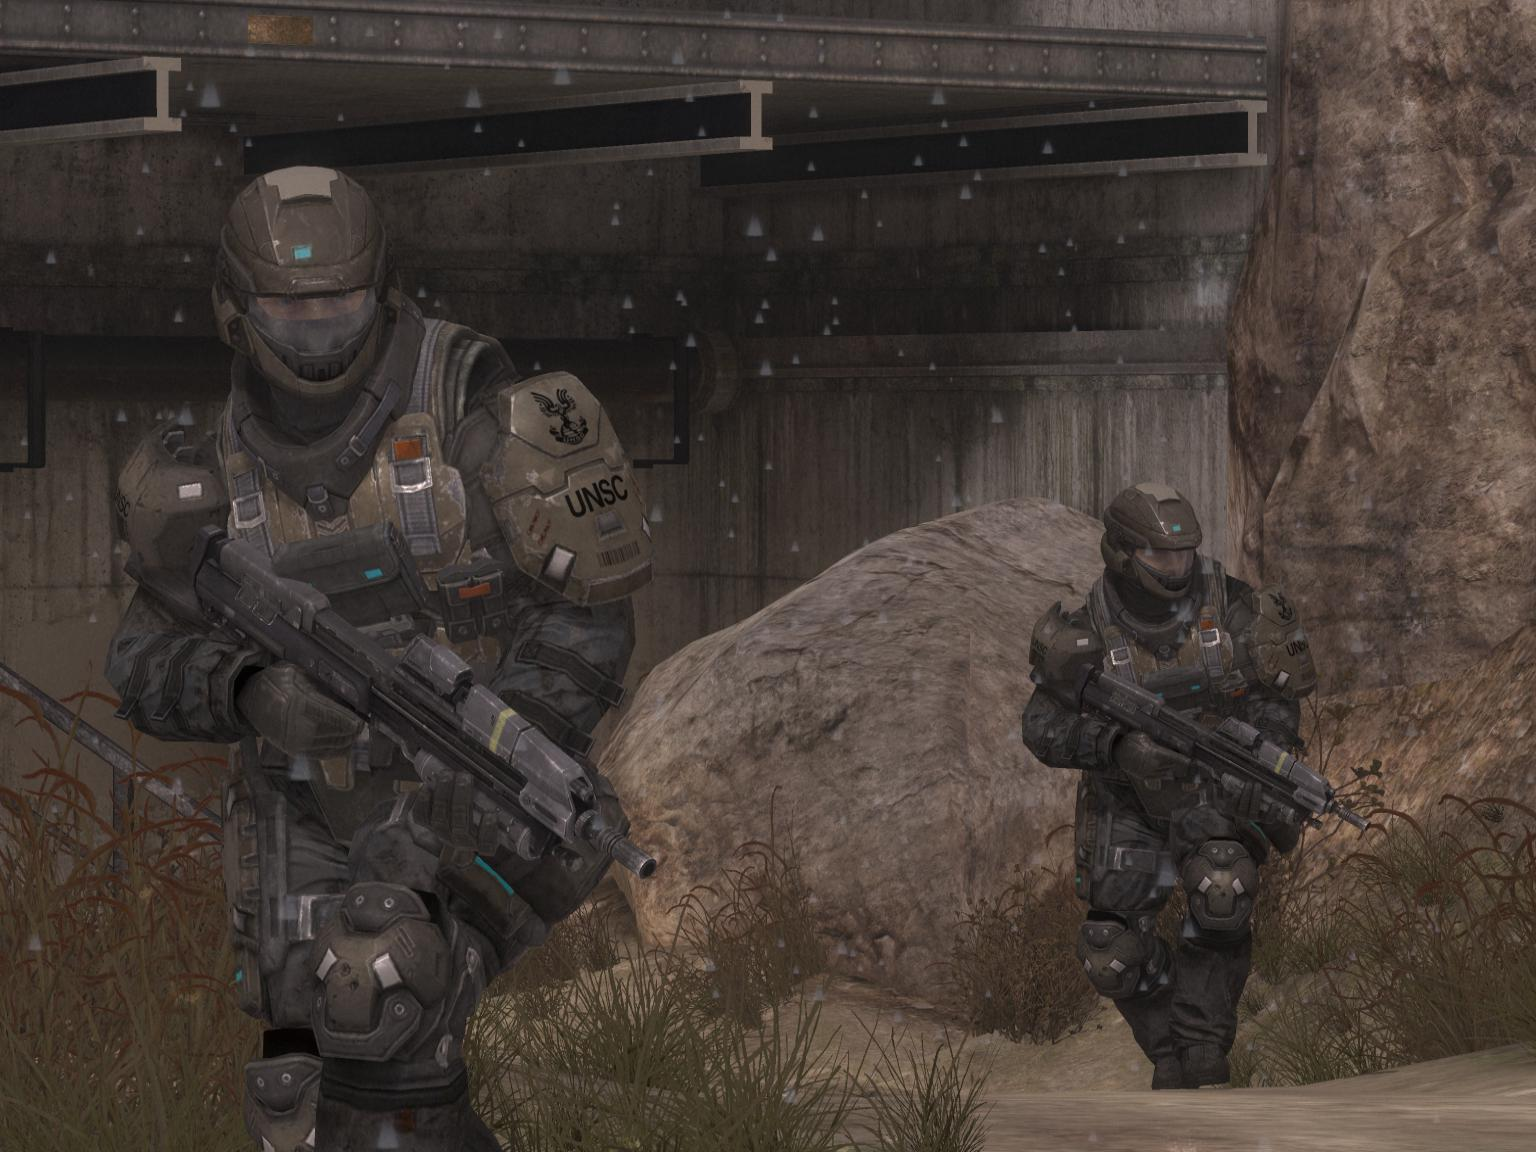 Advanced Warfare (CoD) vs UNSC (Halo) | Page 4